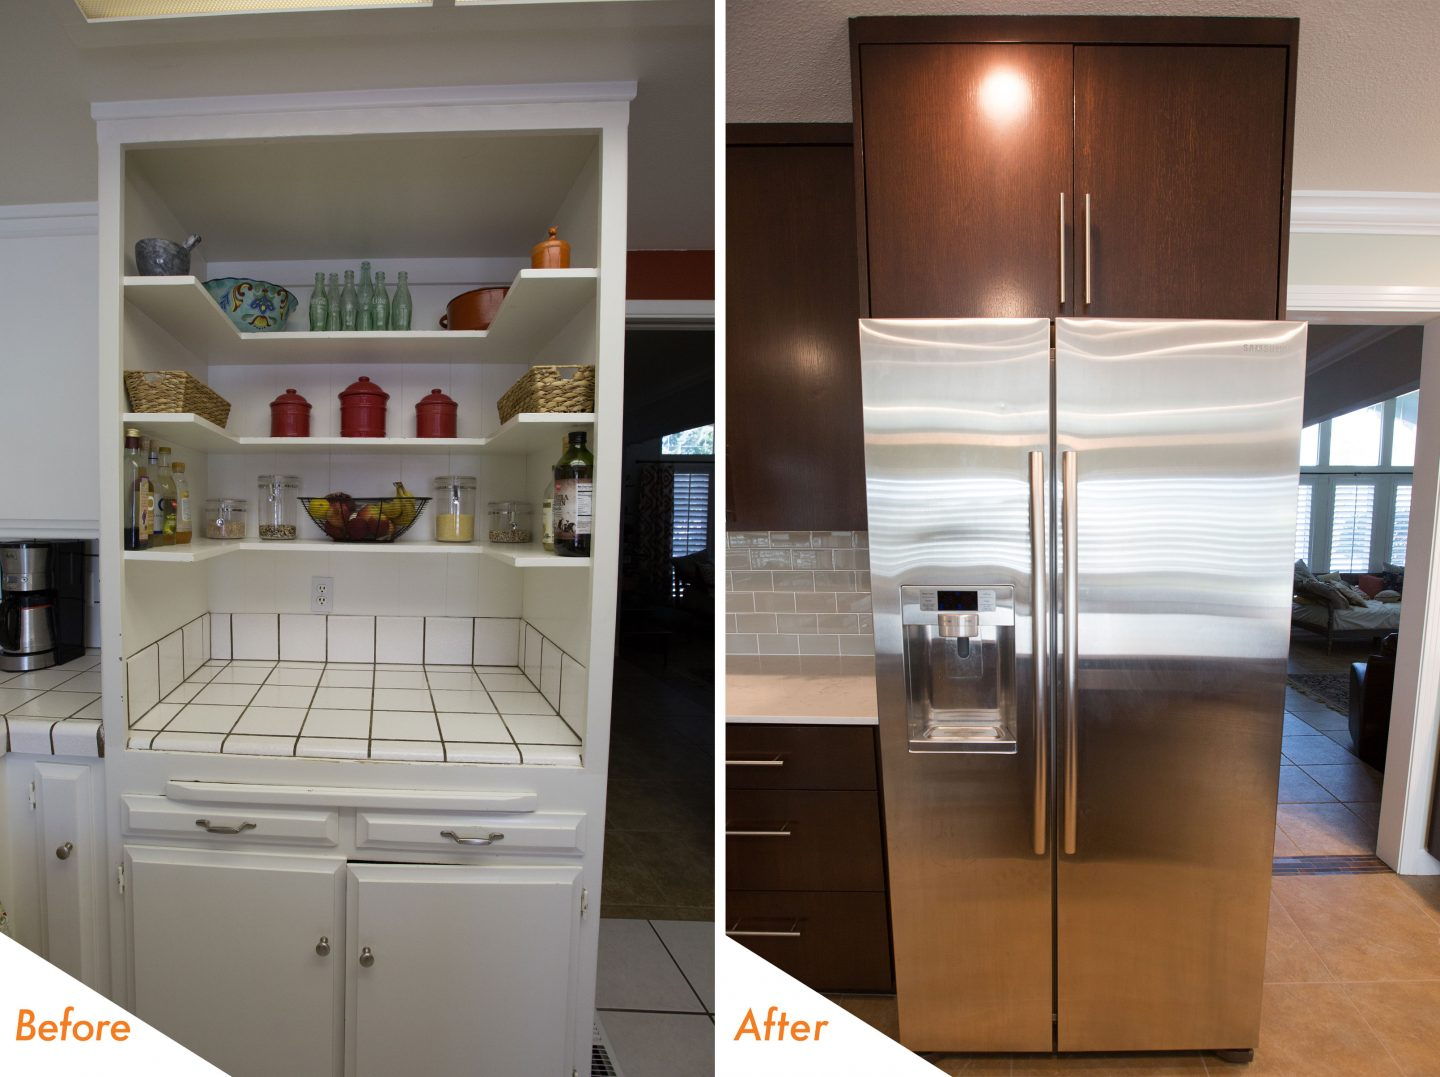 custom kitchen cabinets and new appliances.